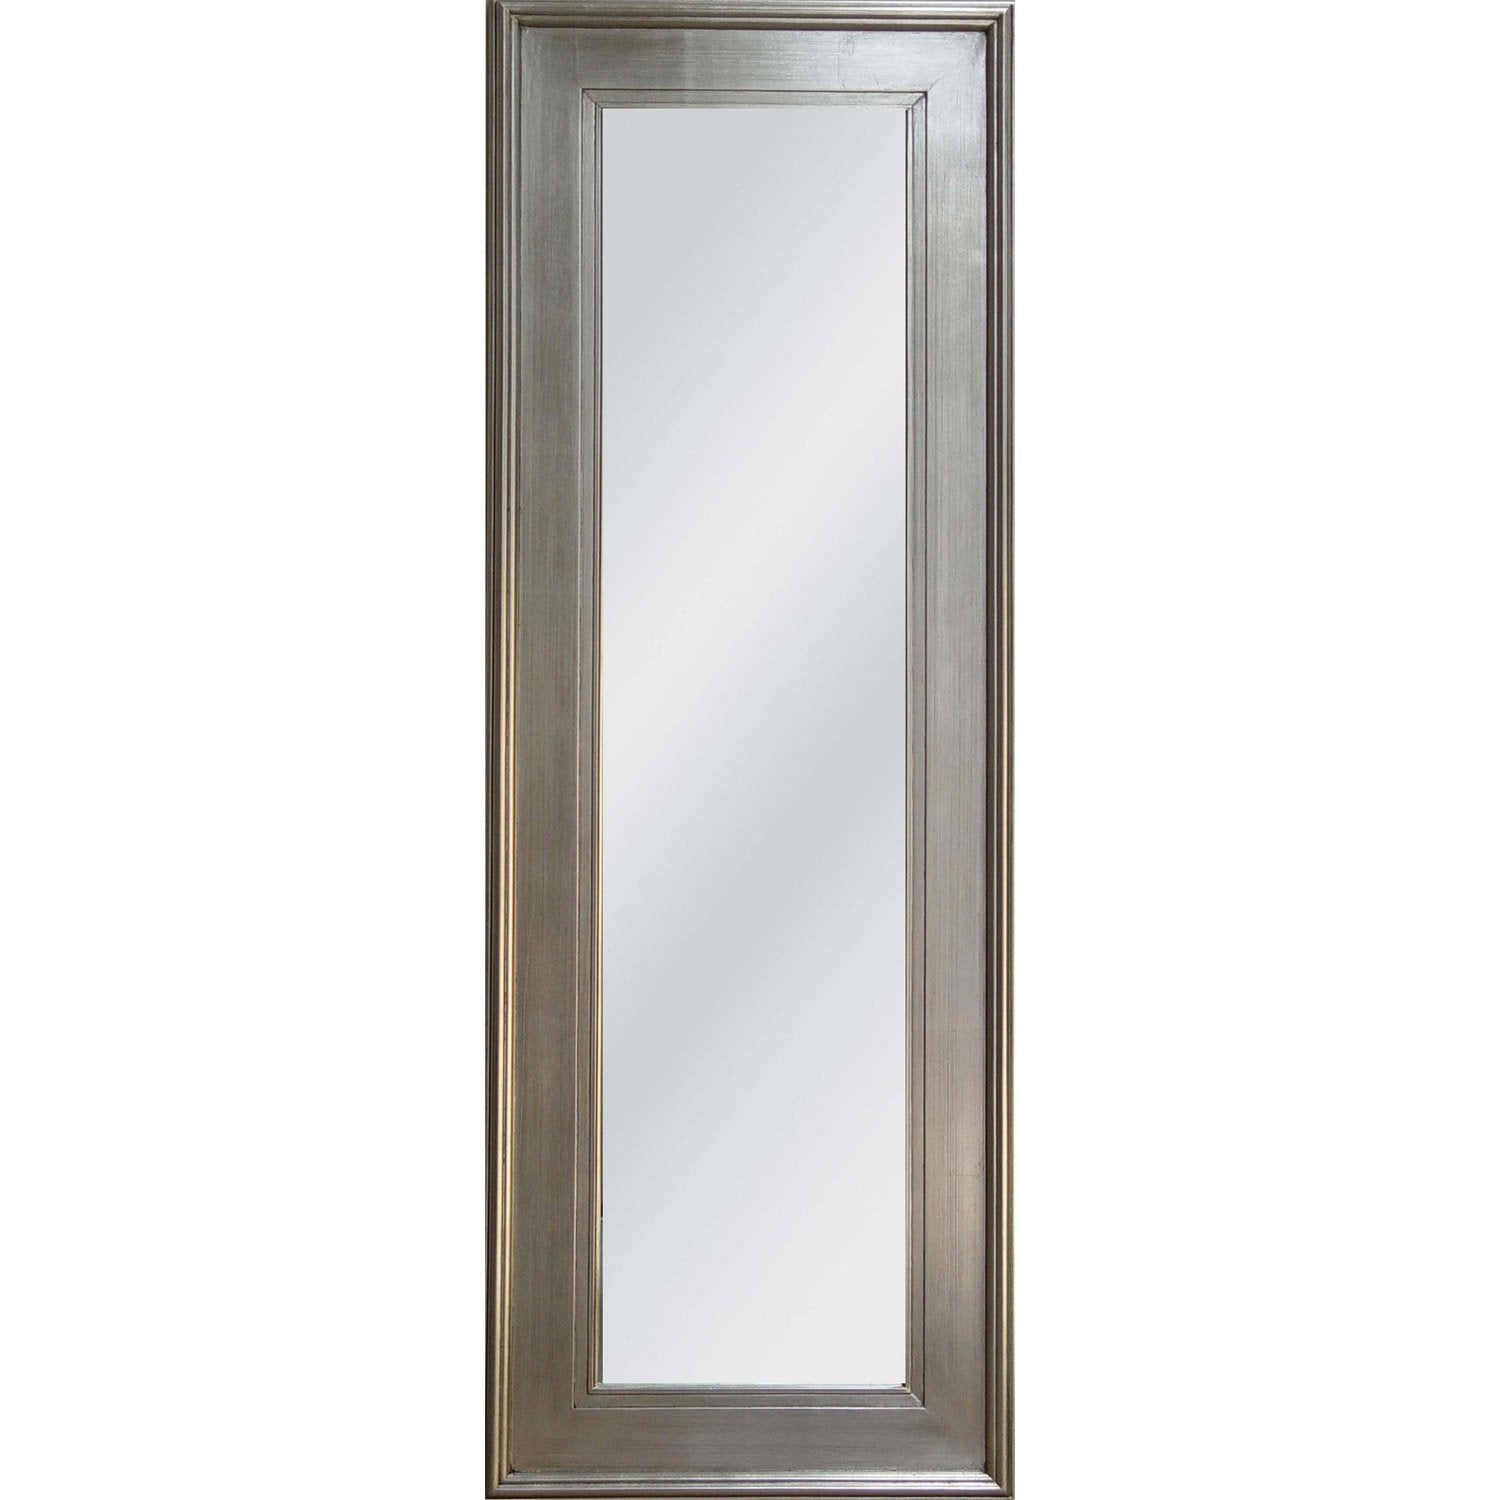 Miroir tisbury rectangle argent 50x140 cm leroy merlin for Miroir 140 cm